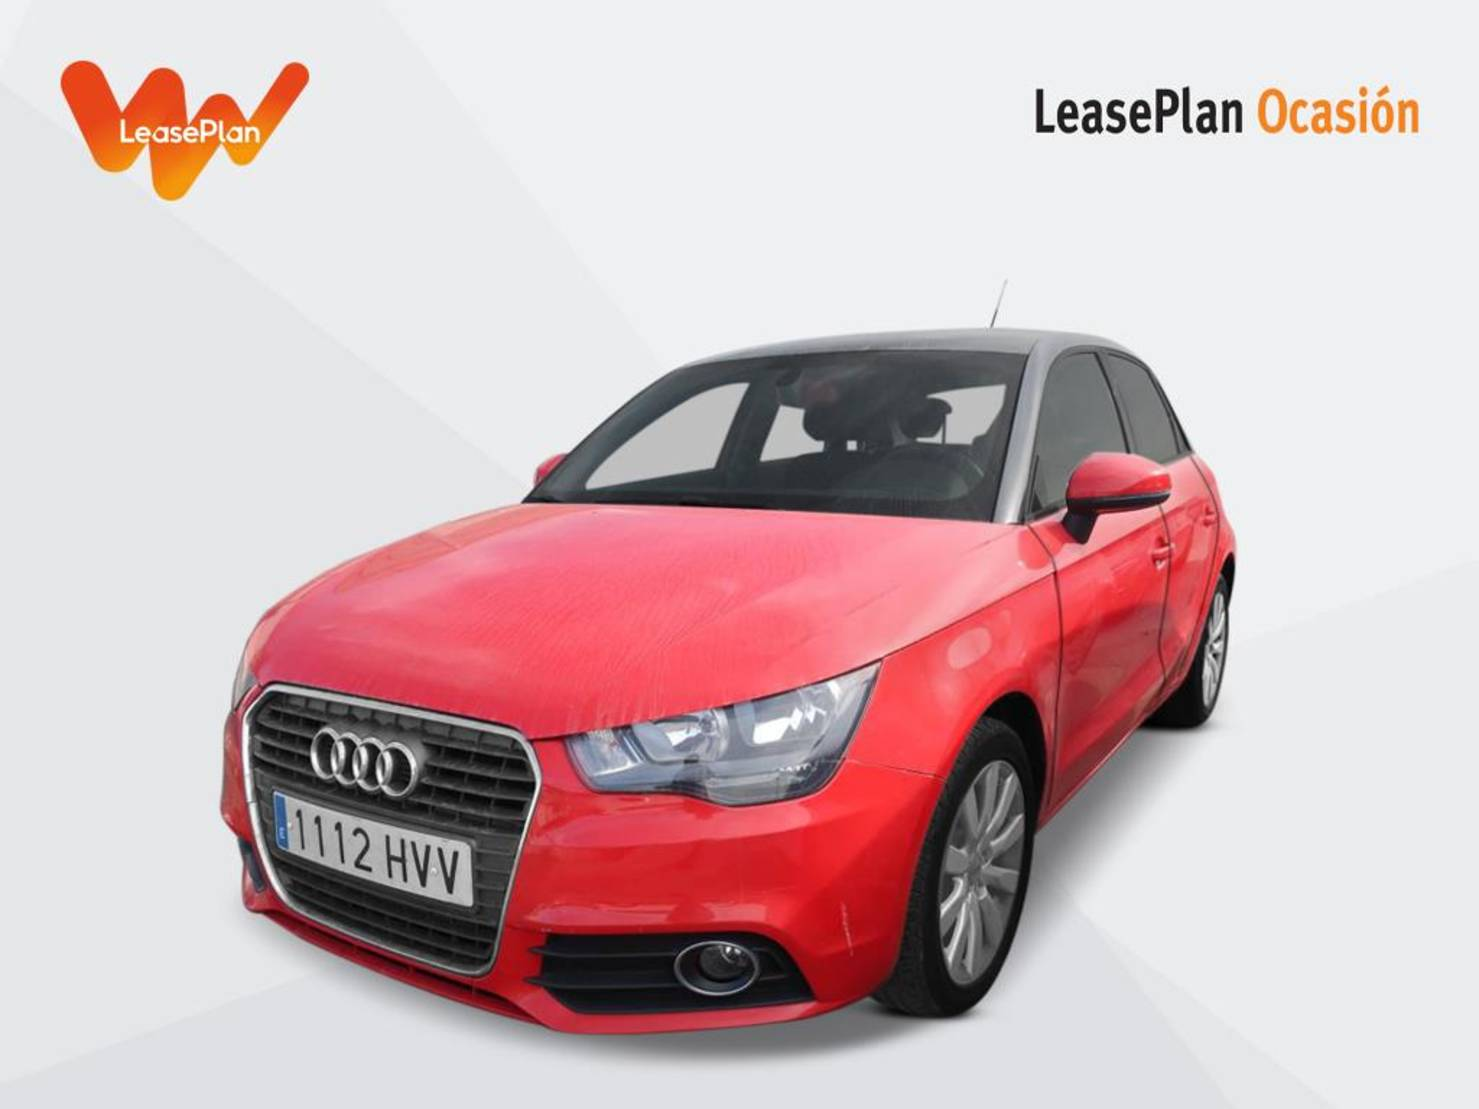 Audi A1 Sportback 1.6 Tdi 90 S TronicAttracted detail1